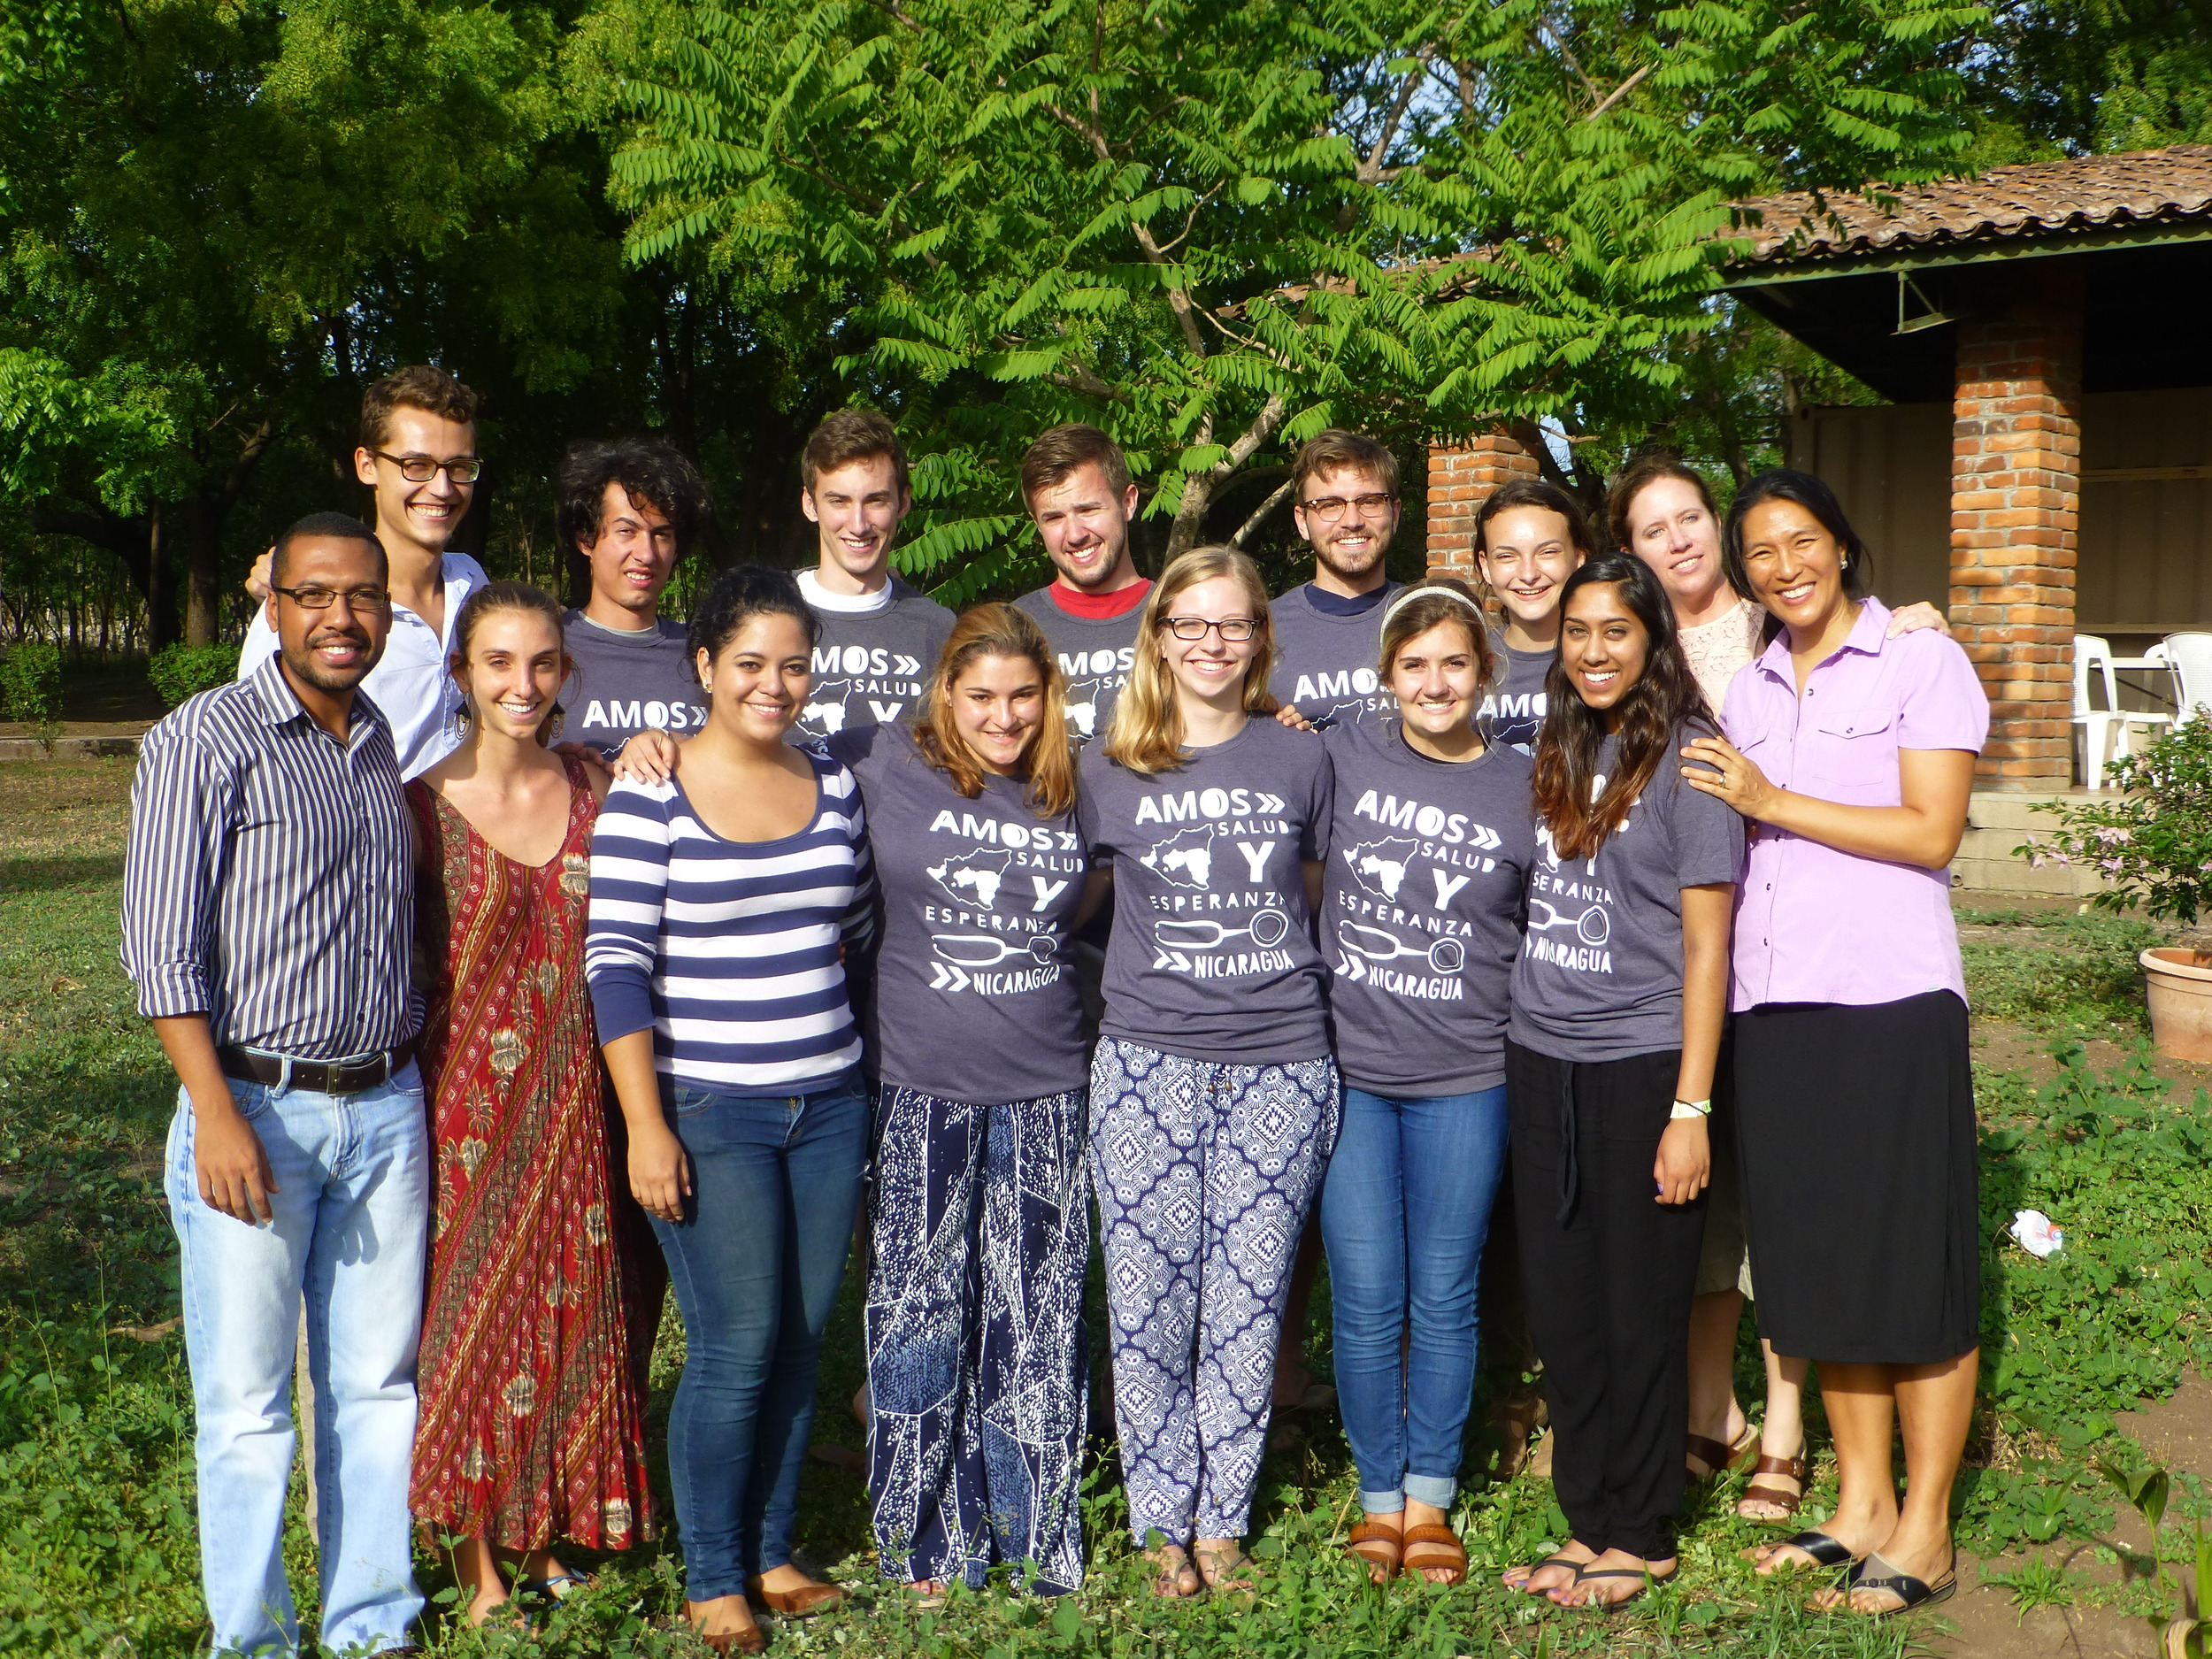 The PWAP-AMOS Global Health Practicum, an educational trip led by former fellows Ben and Leah, at the AMOS campus in Managua, Nicaragua in May 2015.